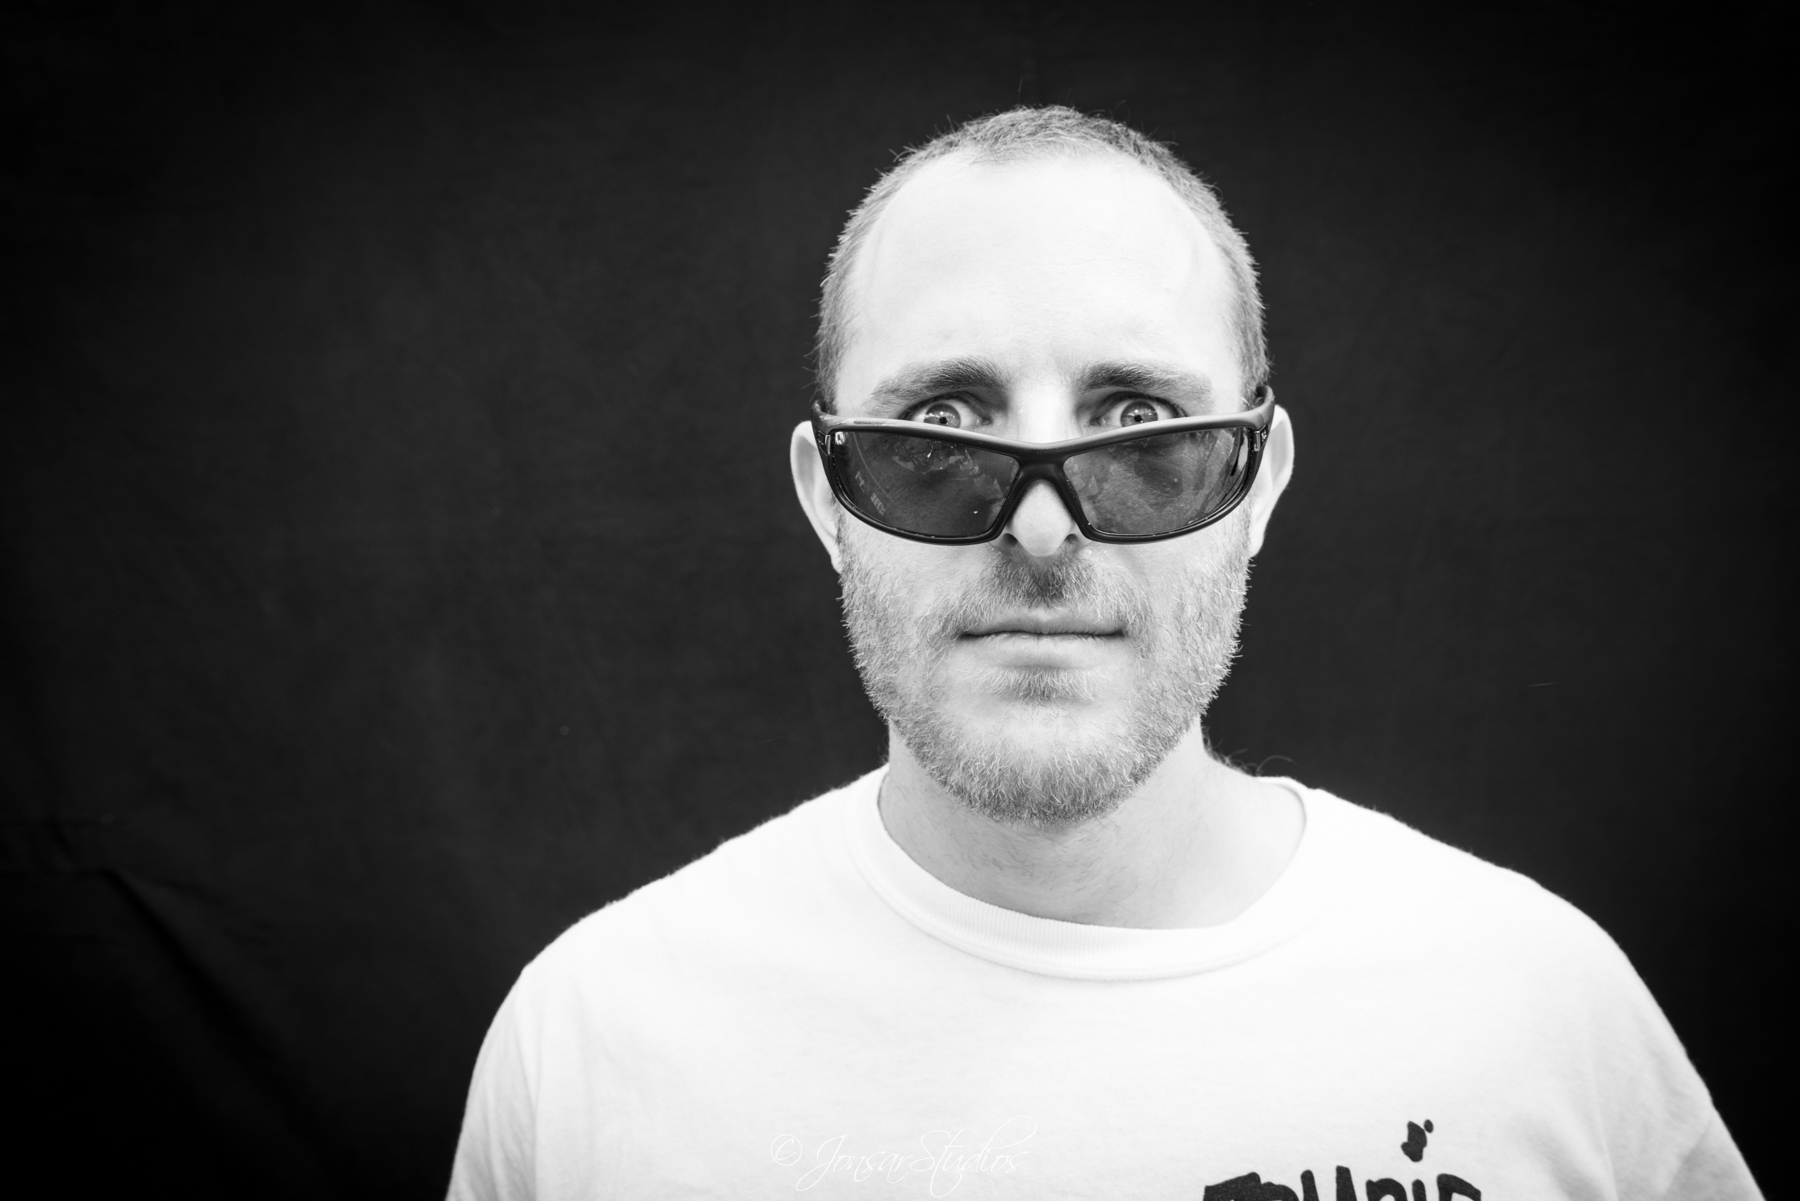 Portrait of man peering over sunglasses, photographed on black background